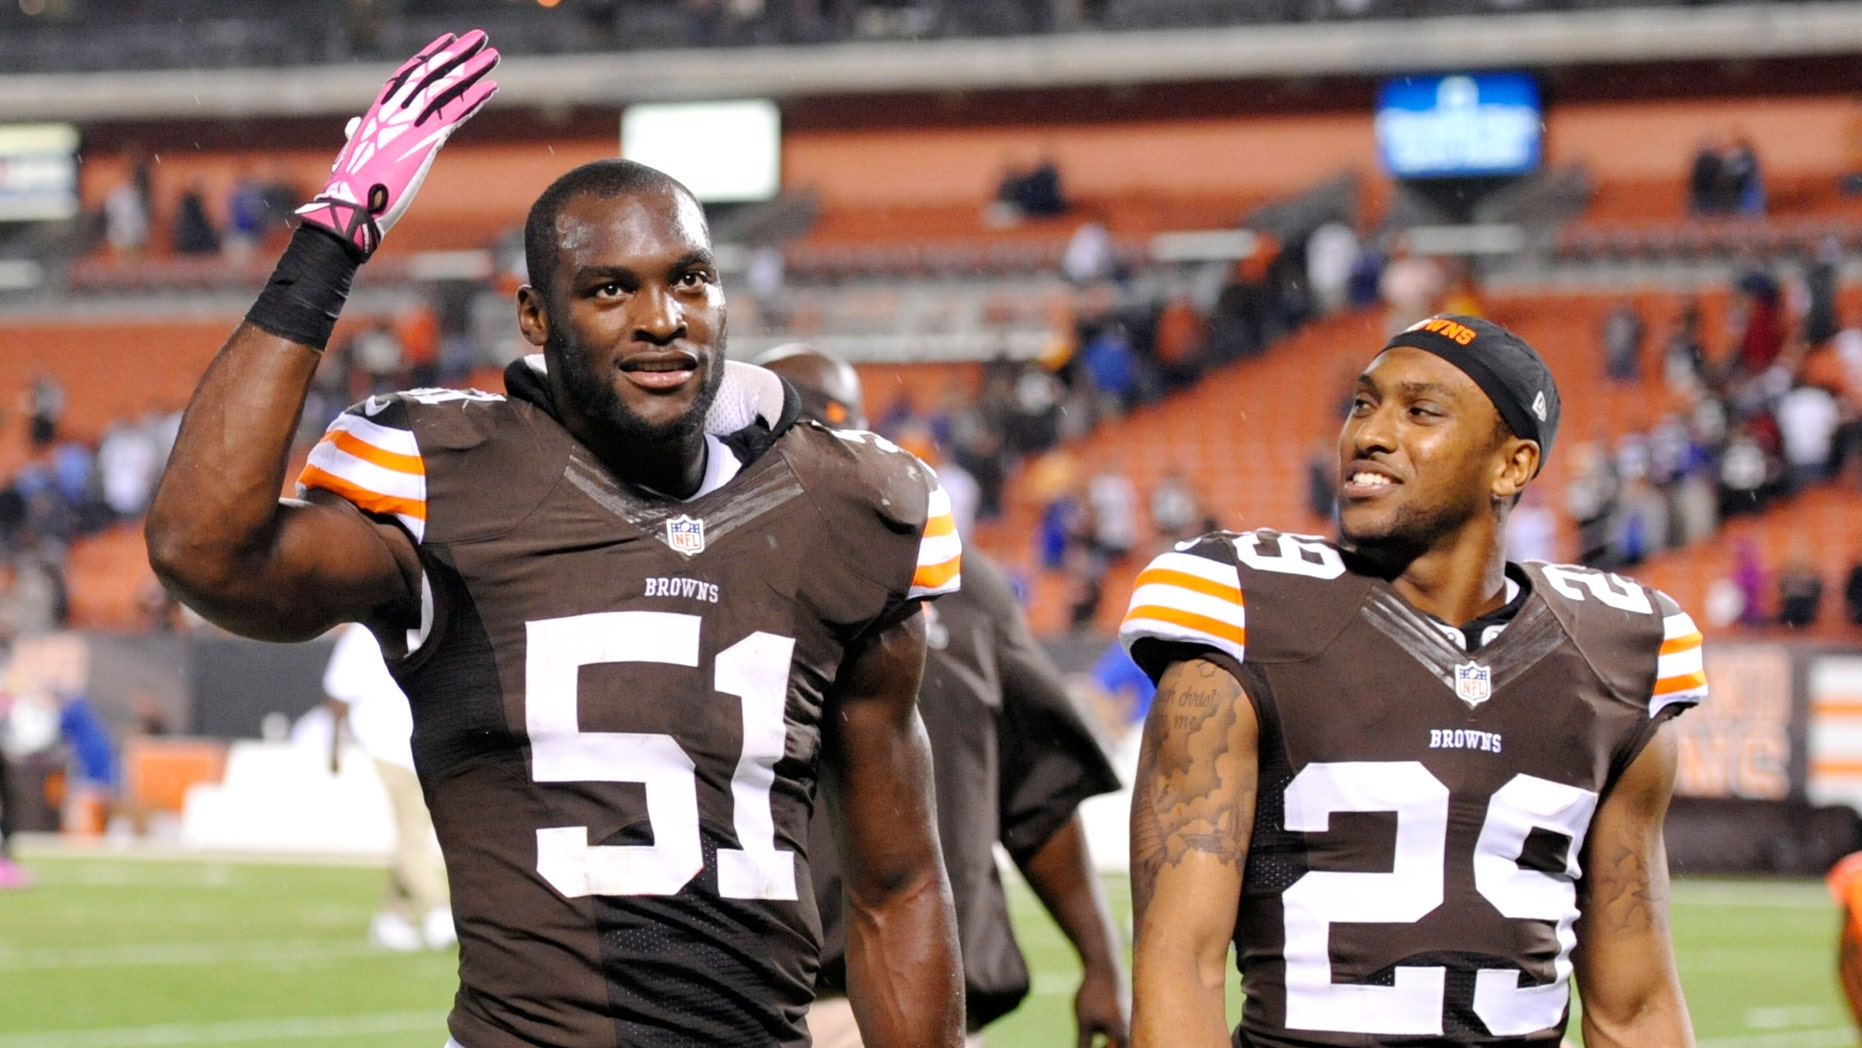 Cleveland Browns outside linebacker Barkevious Mingo (51) and cornerback Leon McFadden (29) celebrate after a 37-24 win over the Buffalo Bills in an NFL football game Thursday, Oct. 3, 2013, in Cleveland. (AP Photo/David Richard)